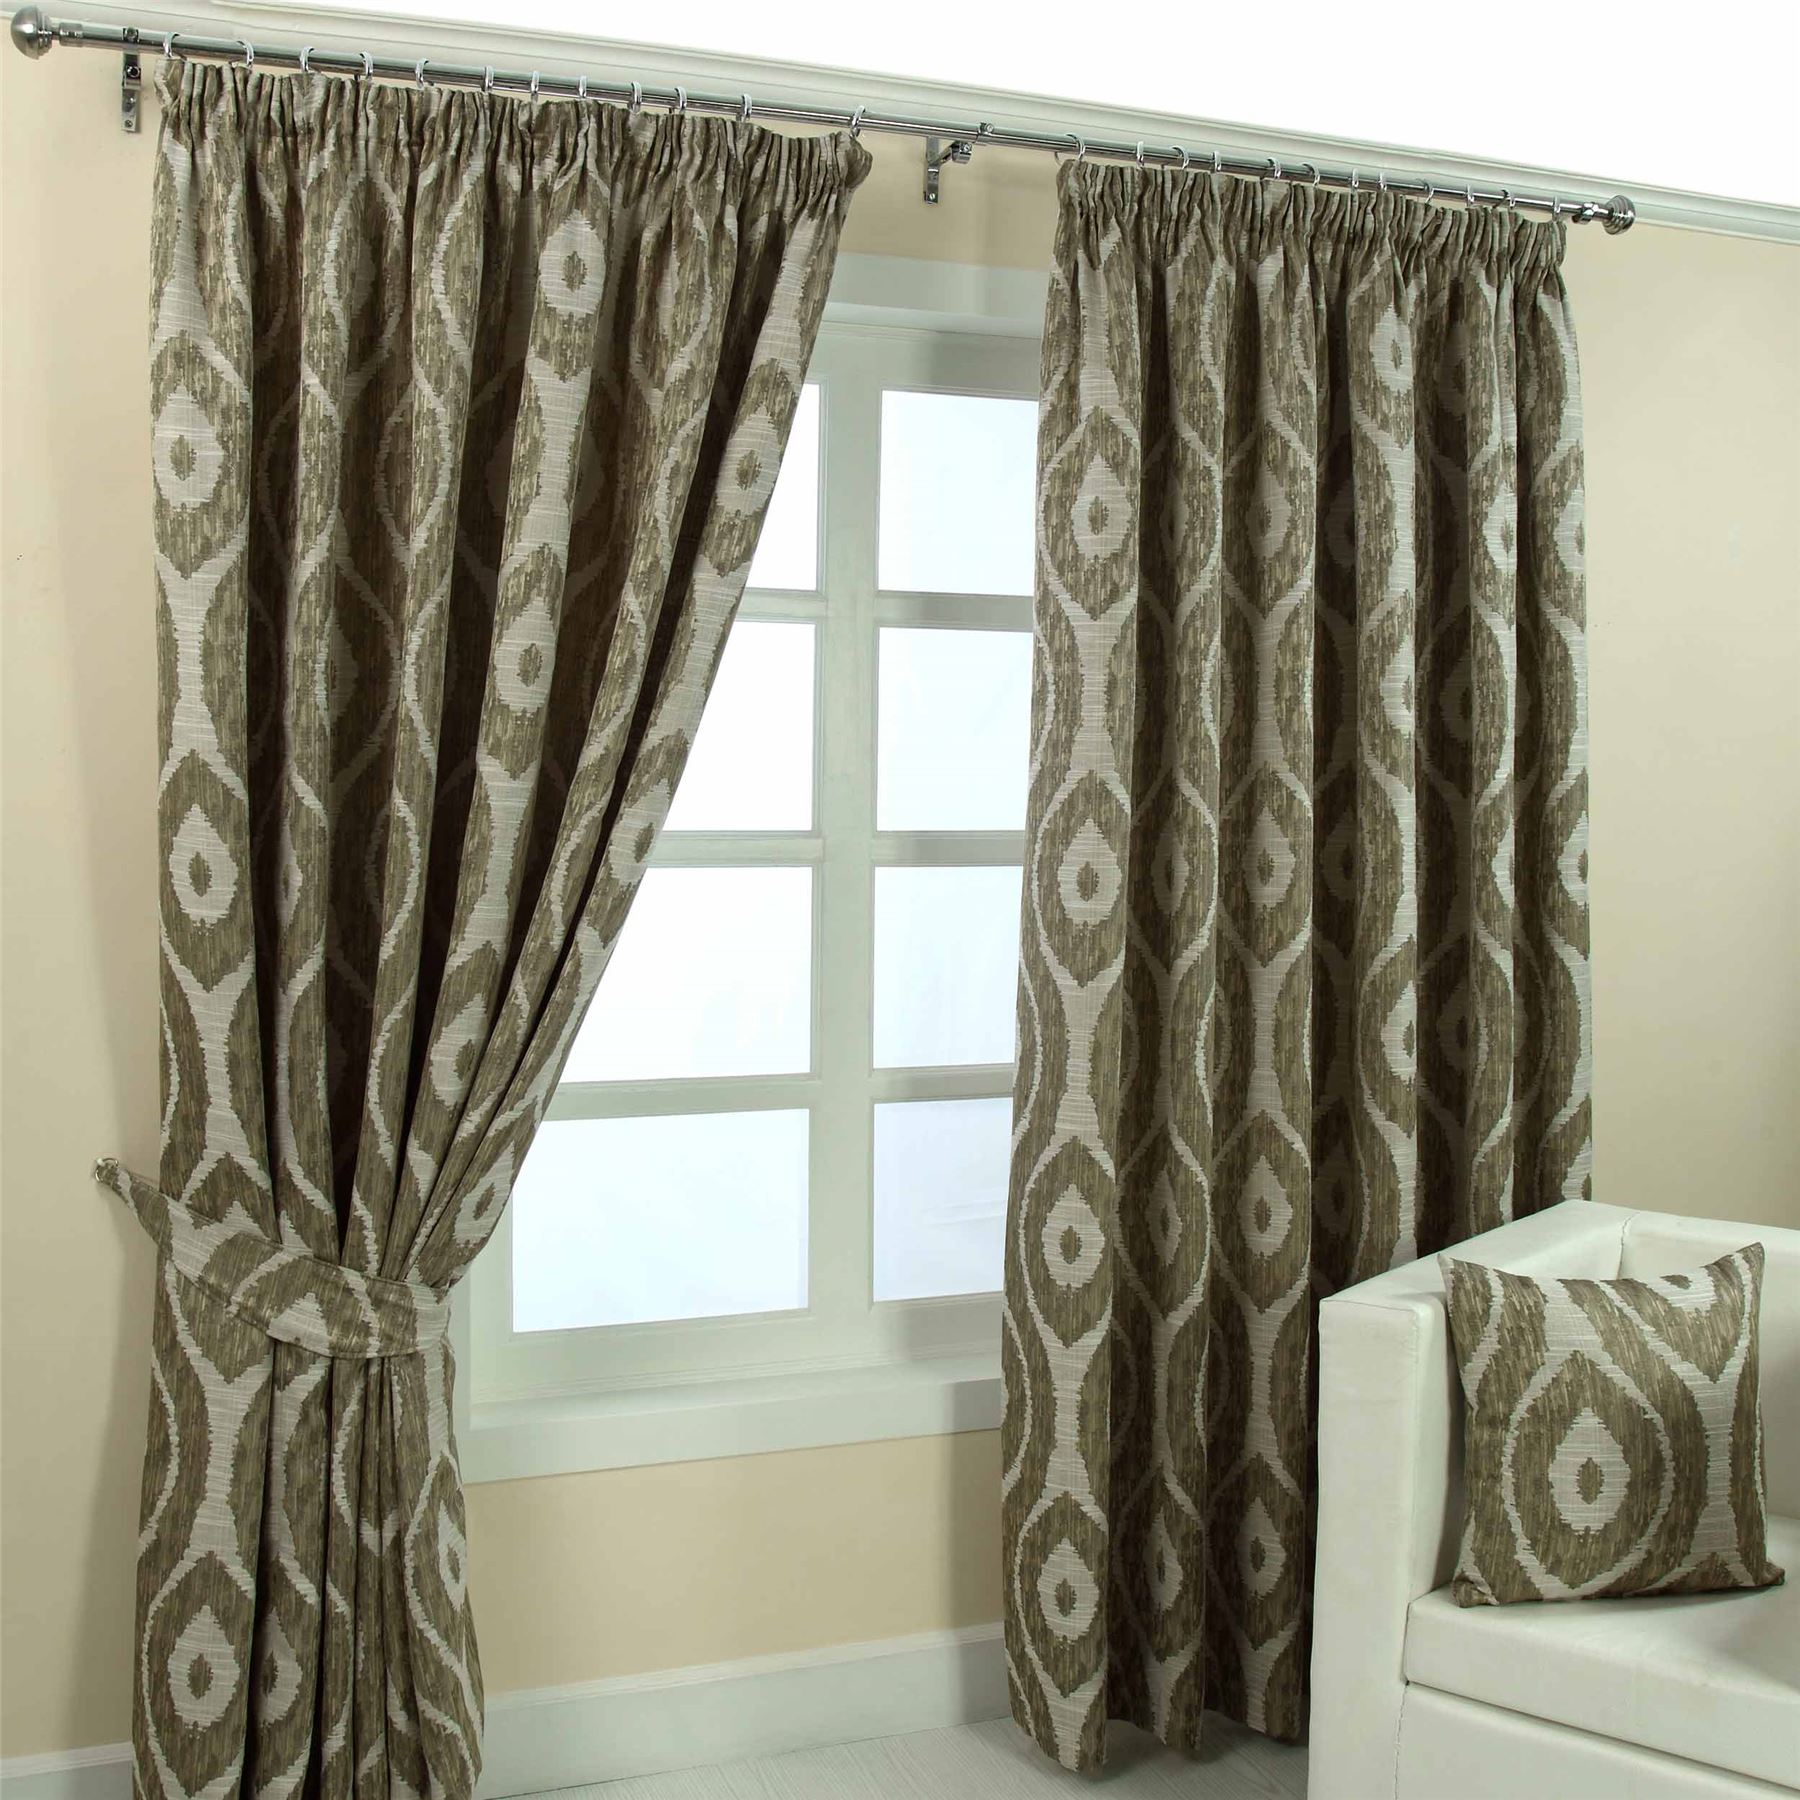 made trees curtina curtain drapes woodland curtains dreams ready